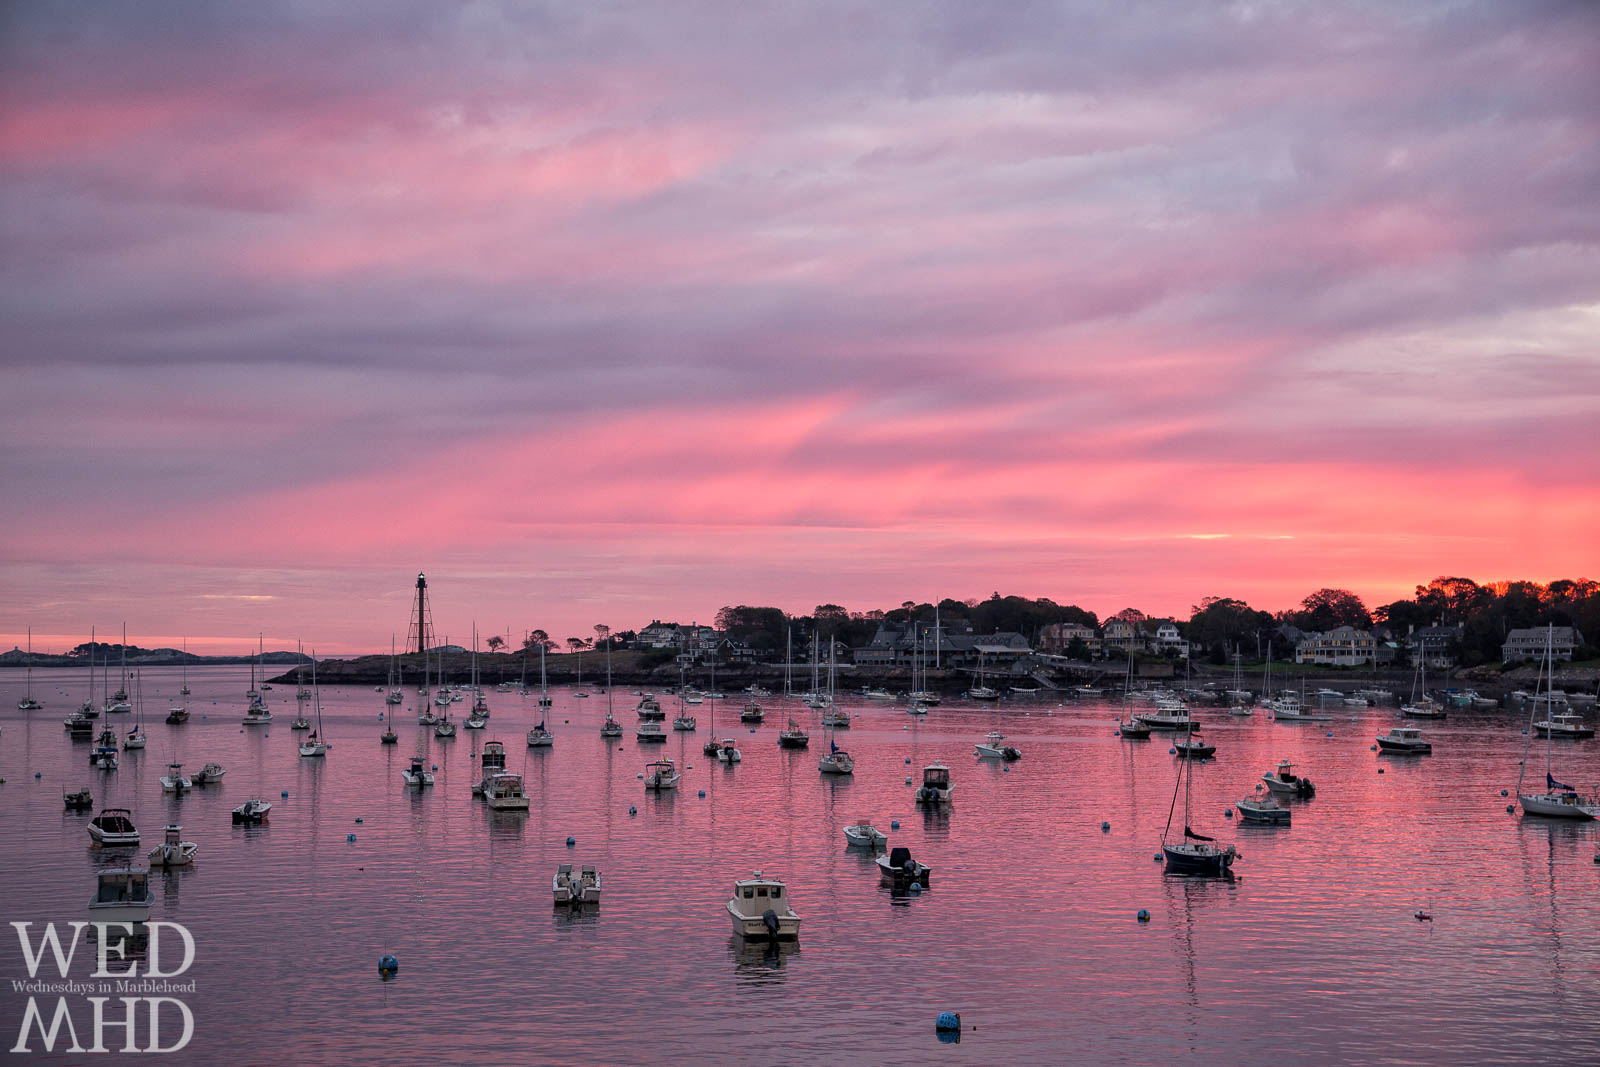 An incredible mix of pinks and purples lights up the sky on a Marblehead Harbor dawn with boats in the harbor all pointing toward Marblehead Light